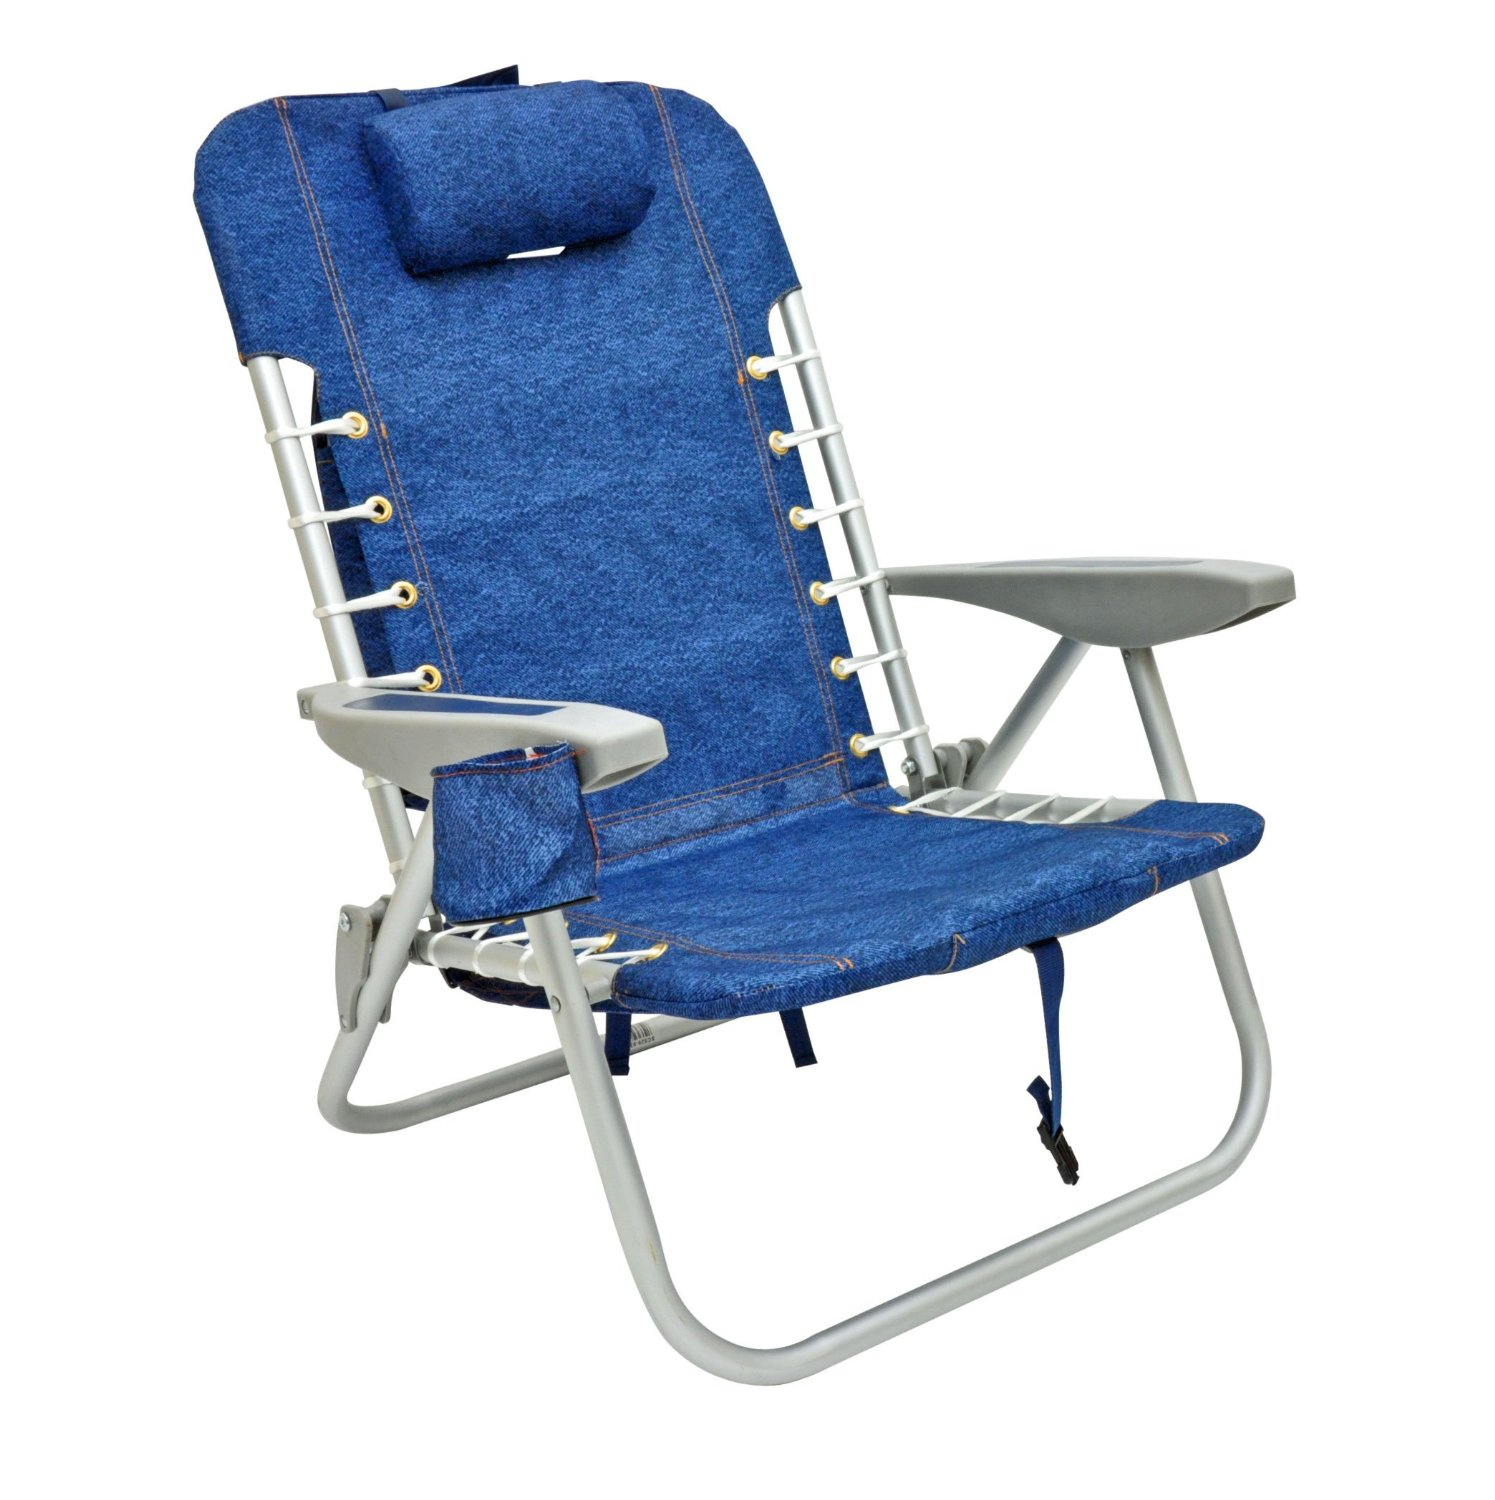 RIO 4 Position Deluxe Lace up Aluminum Backpack Chair